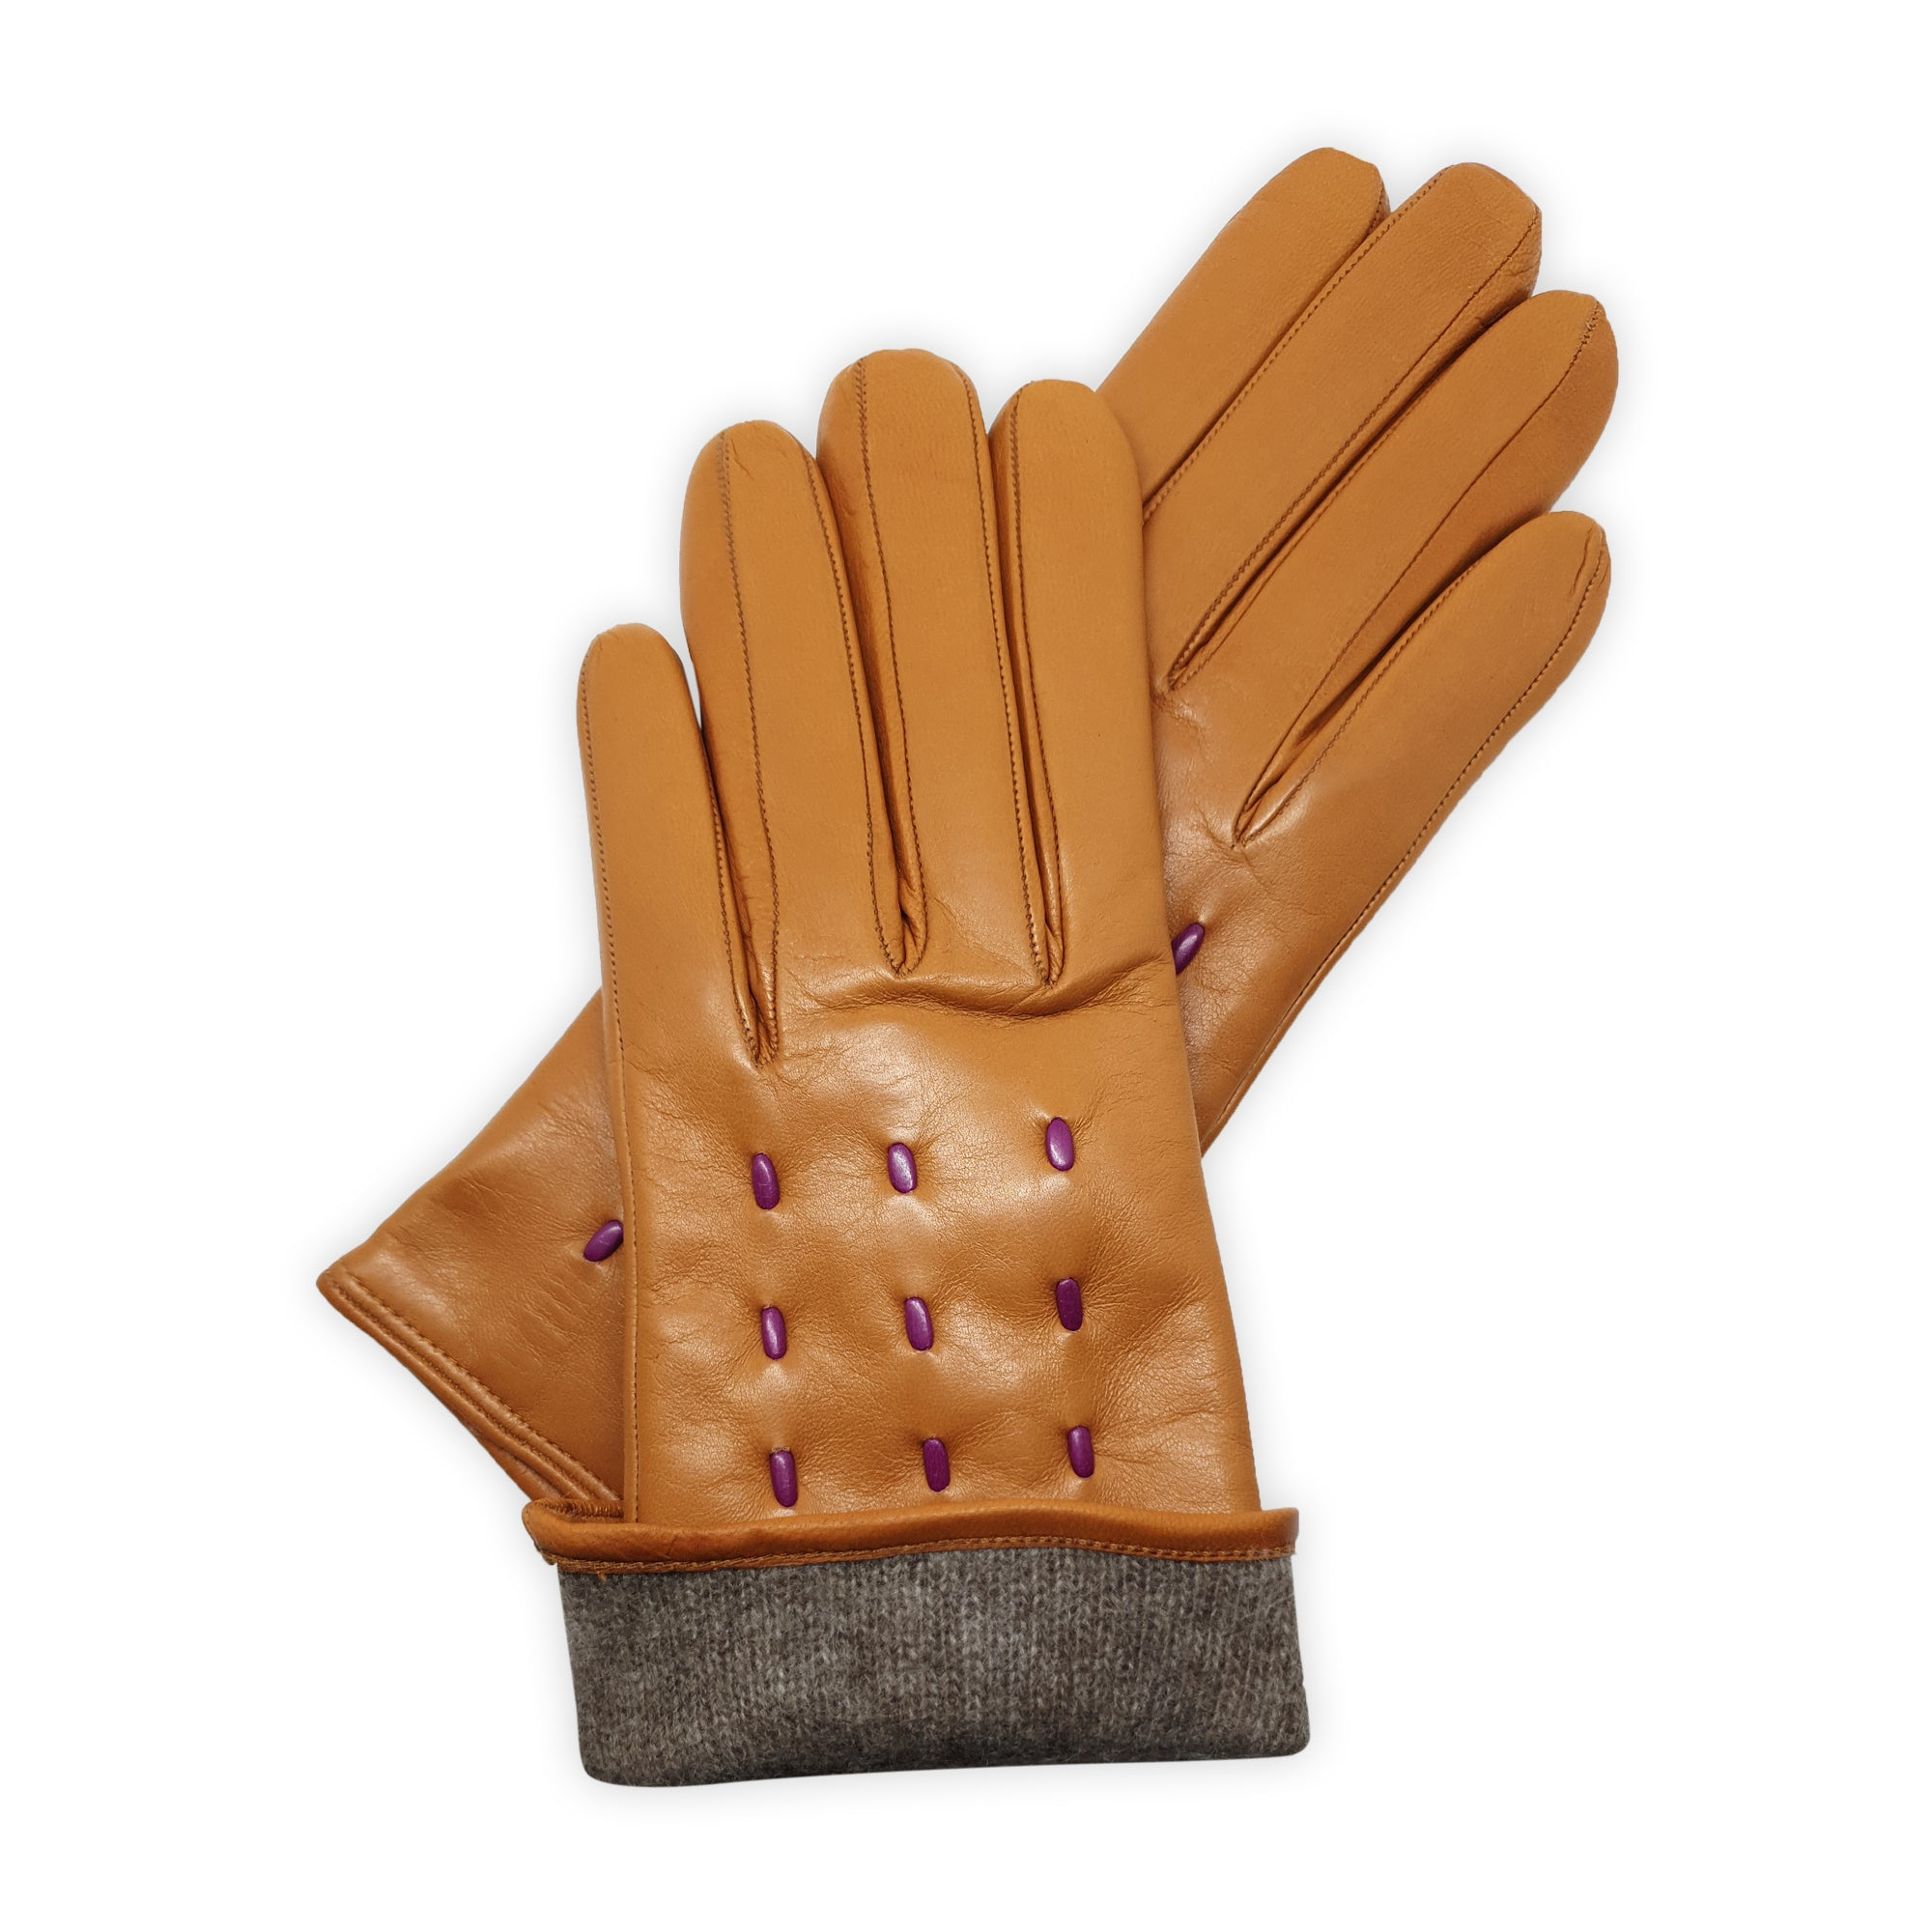 Genuine leather gloves lined in 100% cashmere, contrasting leather cords, Milano model